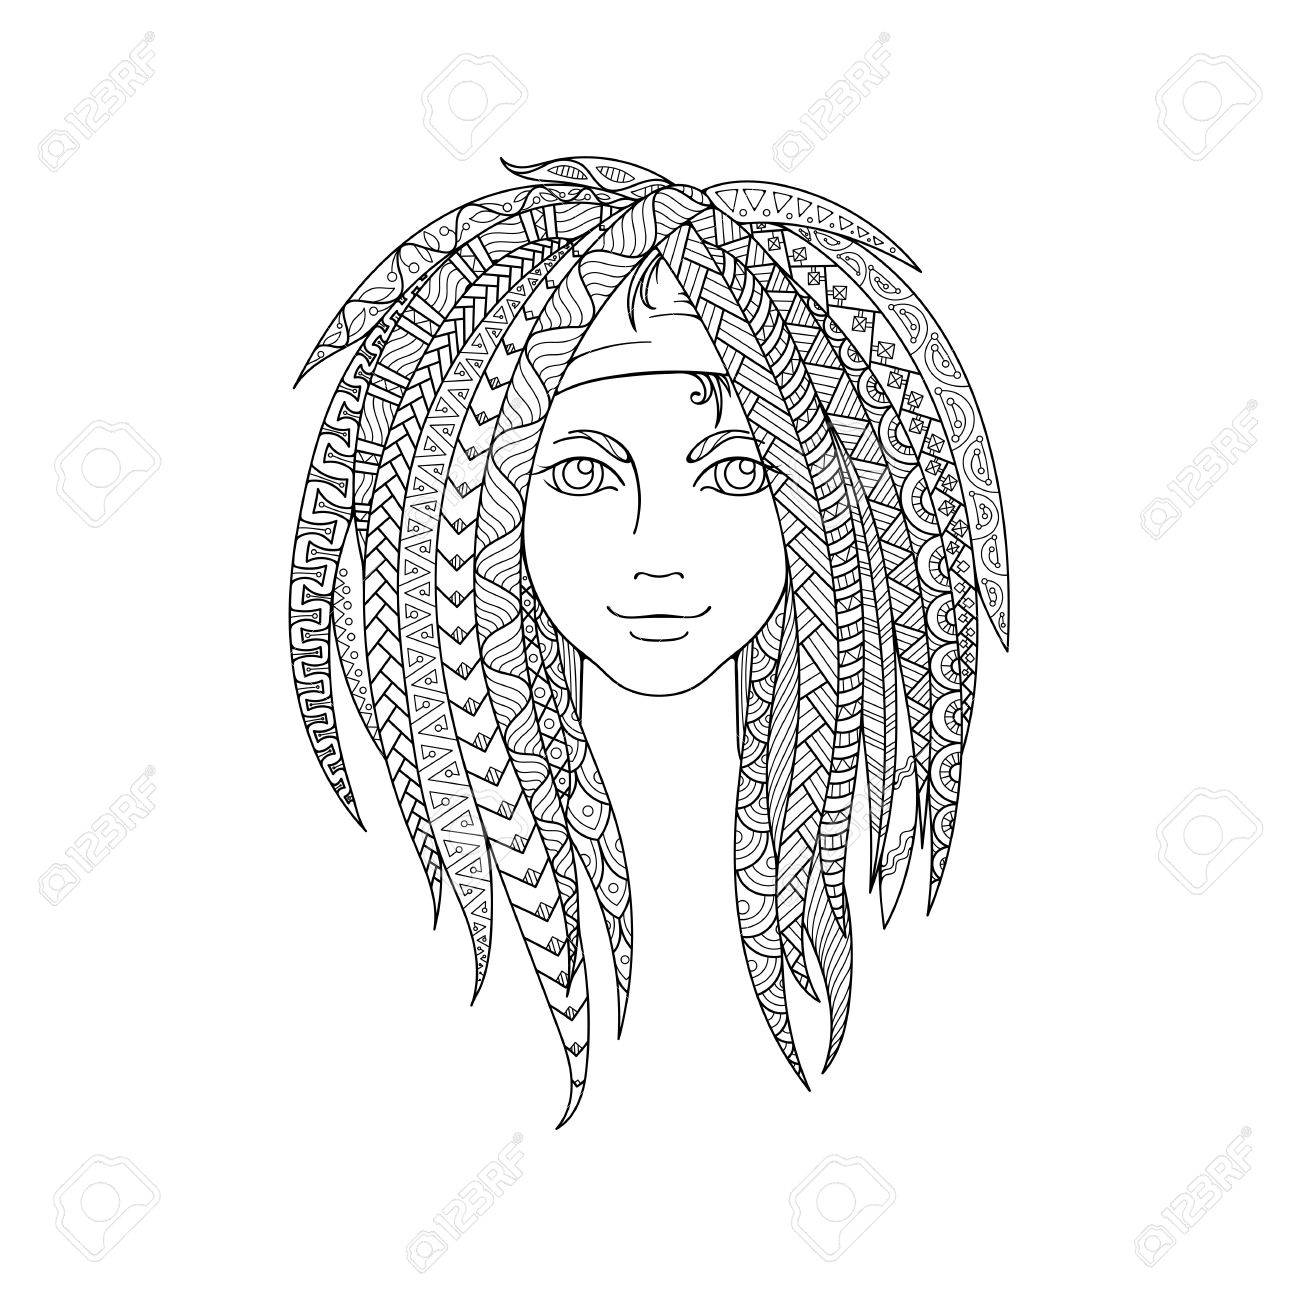 Young Girl With Patterned Zentangle Dreadlocks. Ornate Hairstyle ...